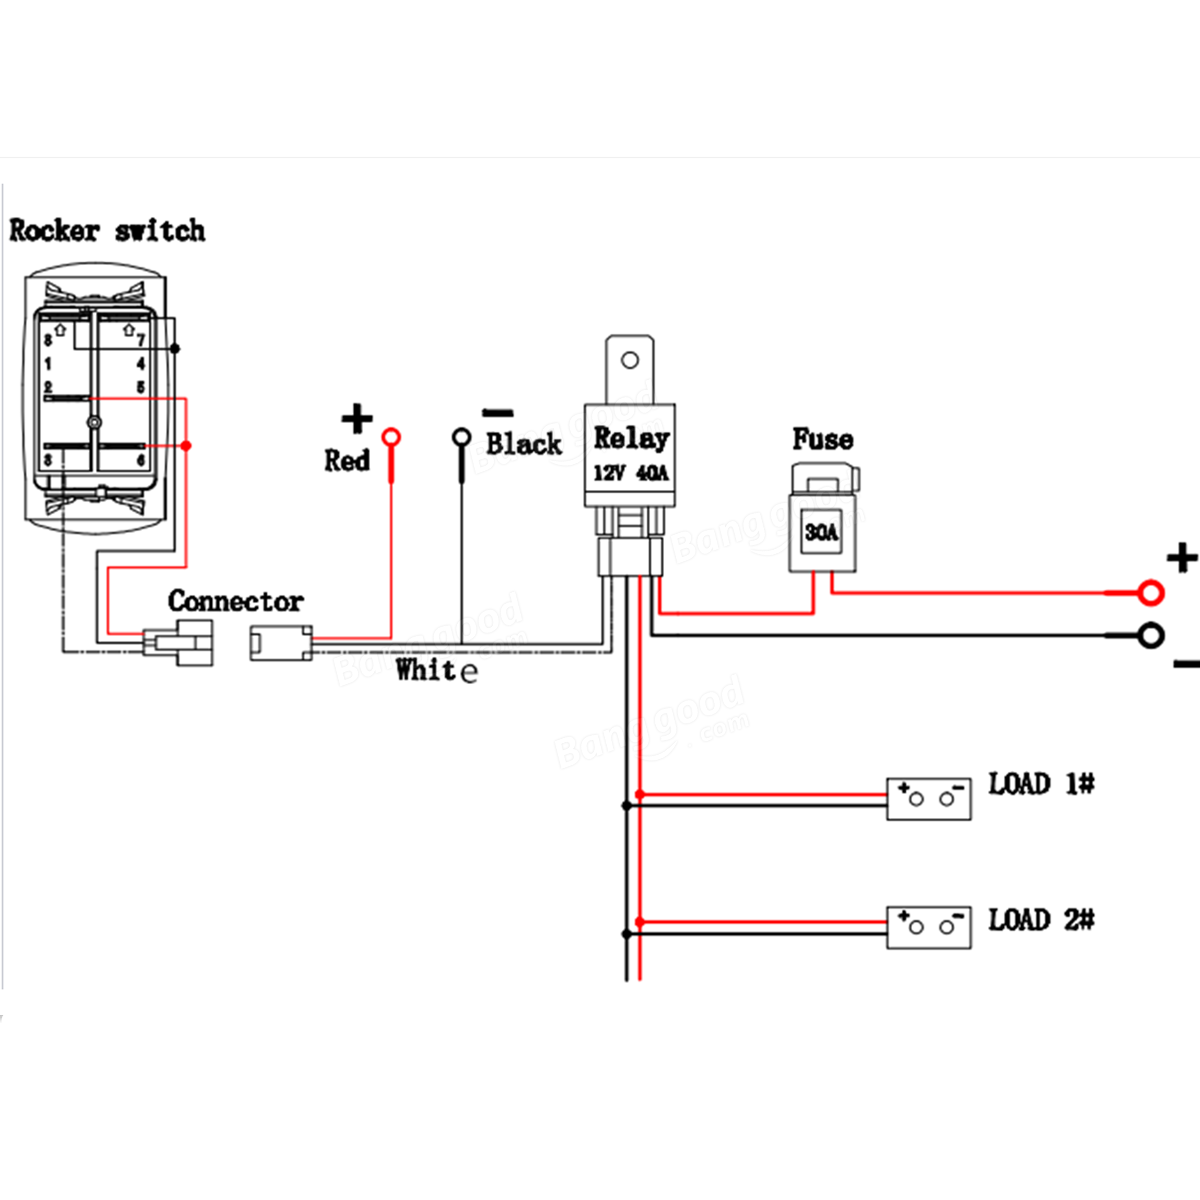 9d6bacef 8f68 448c b477 28191a6abe22 12 v 40a wiring harness 1990 toyota pickup wiring harness \u2022 wiring 12vdc relay wiring diagram at reclaimingppi.co